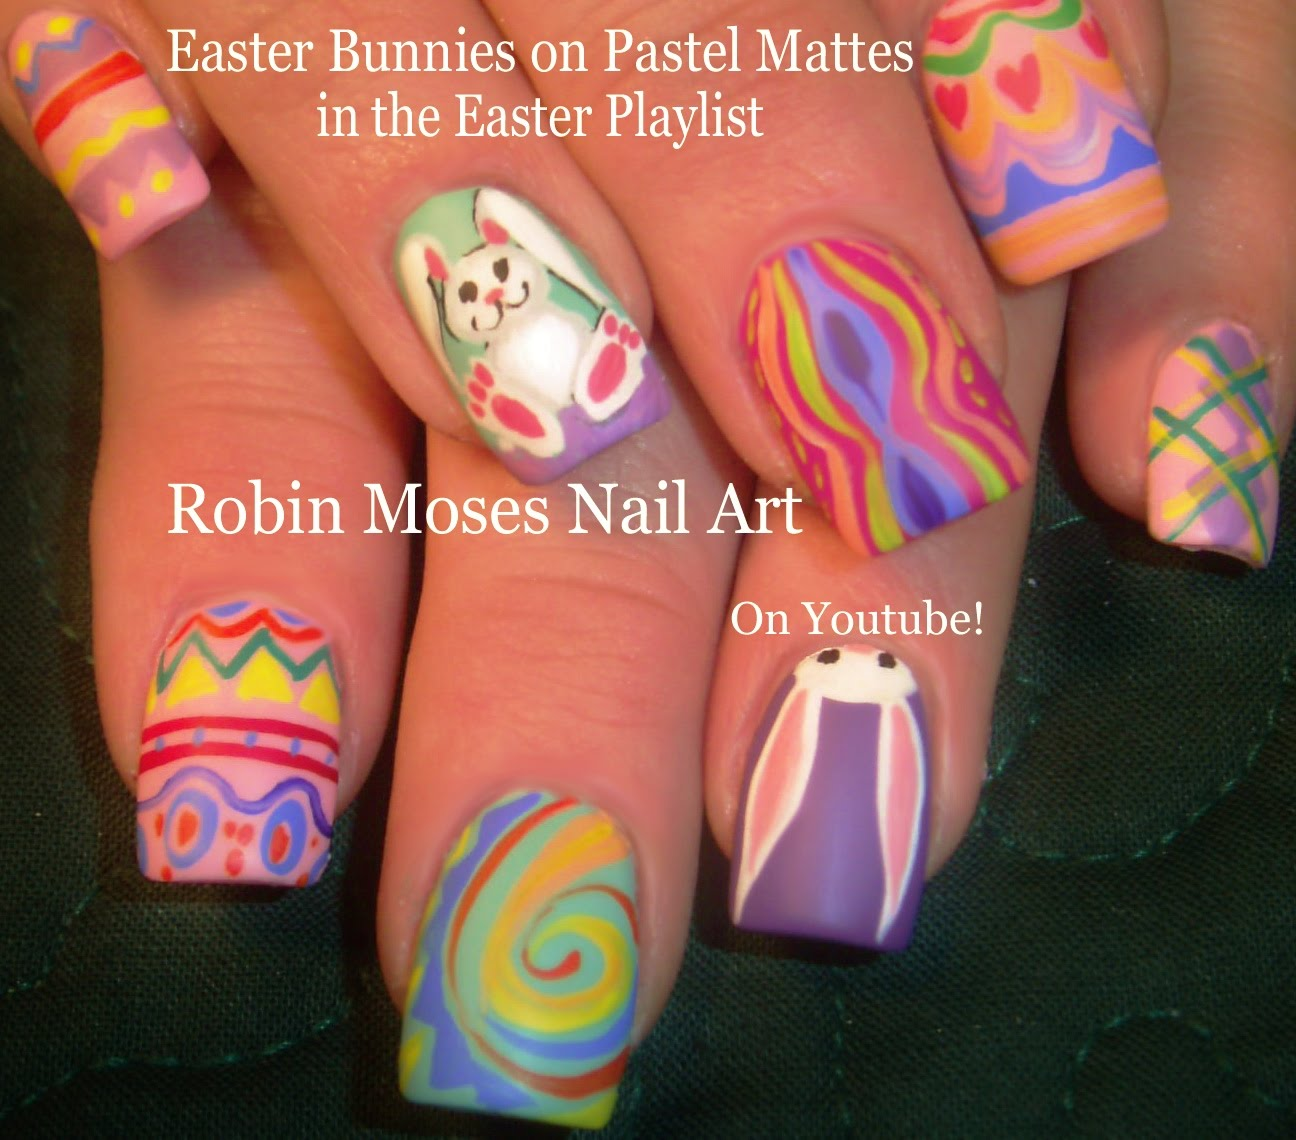 Try Out This Amazing Intricate Pastel Easter Nail Art Design